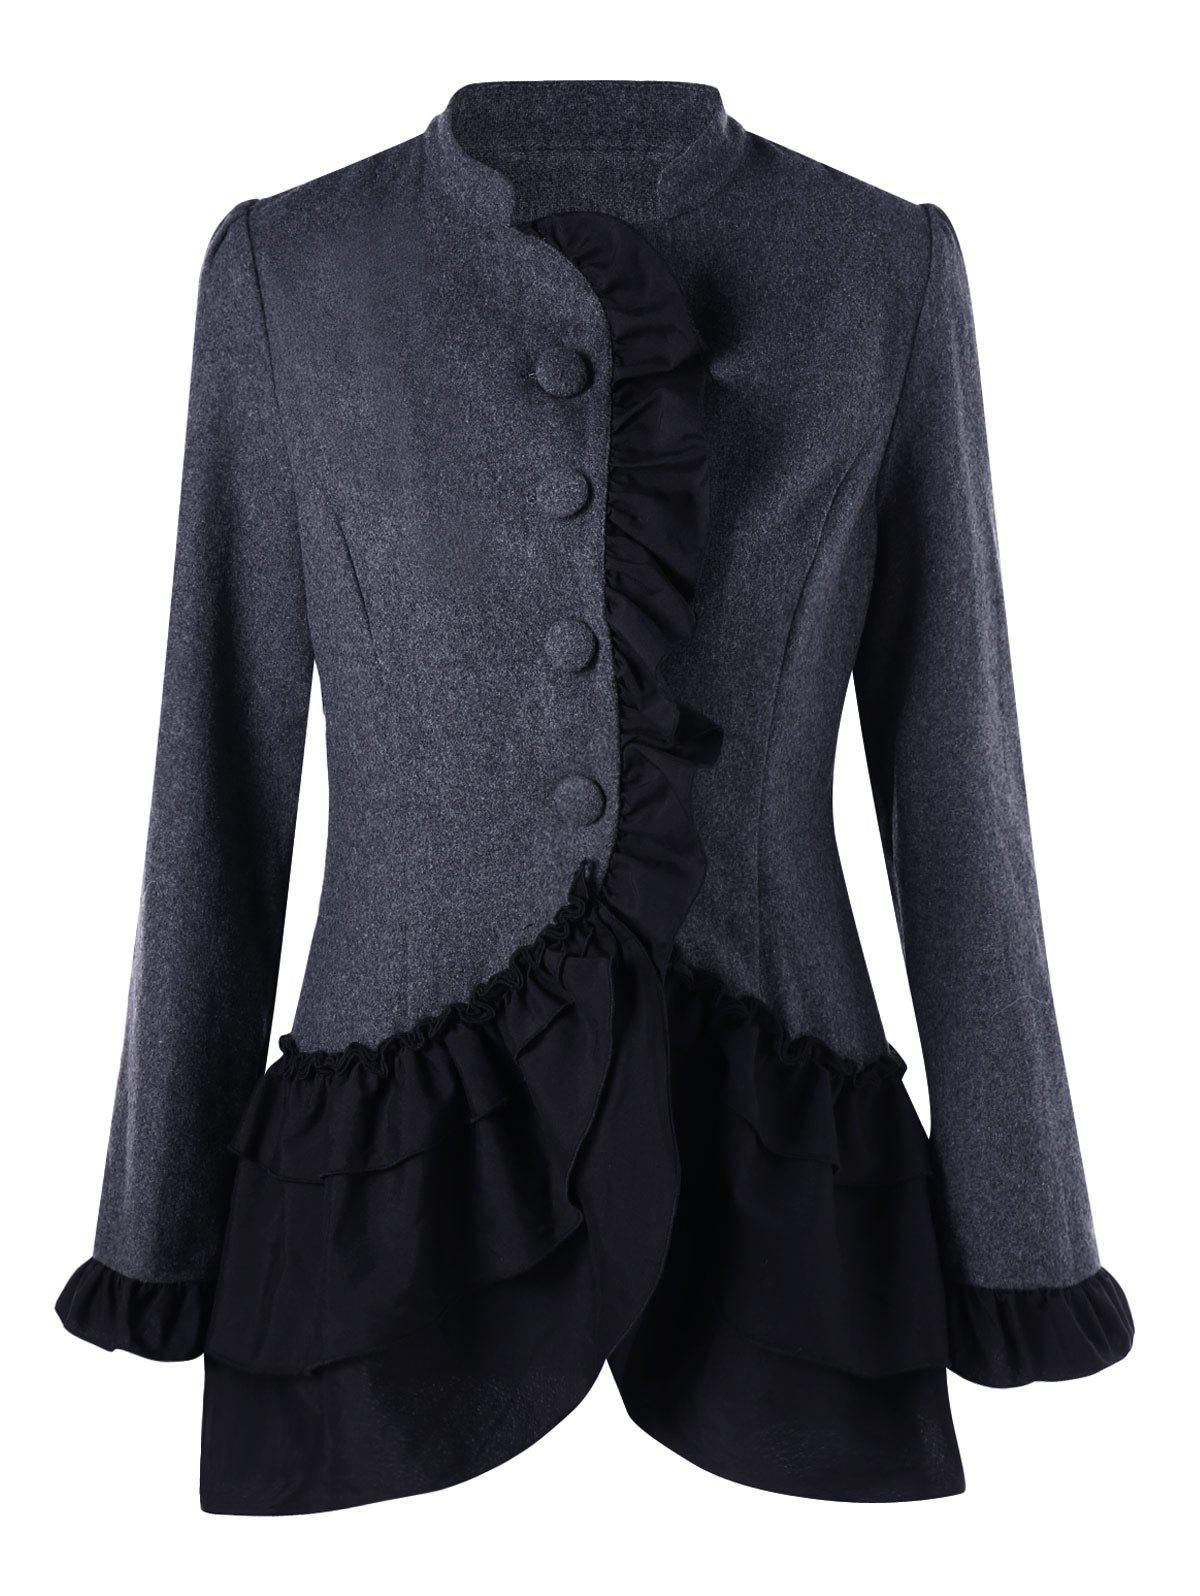 Ruffle Trim Layered CoatWOMEN<br><br>Size: XL; Color: DEEP GRAY; Clothes Type: Others; Material: Polyester; Type: Slim; Shirt Length: Long; Sleeve Length: Full; Collar: Stand-Up Collar; Pattern Type: Solid; Style: Fashion; Season: Fall,Spring; Weight: 0.4100kg; Package Contents: 1 x Coat;